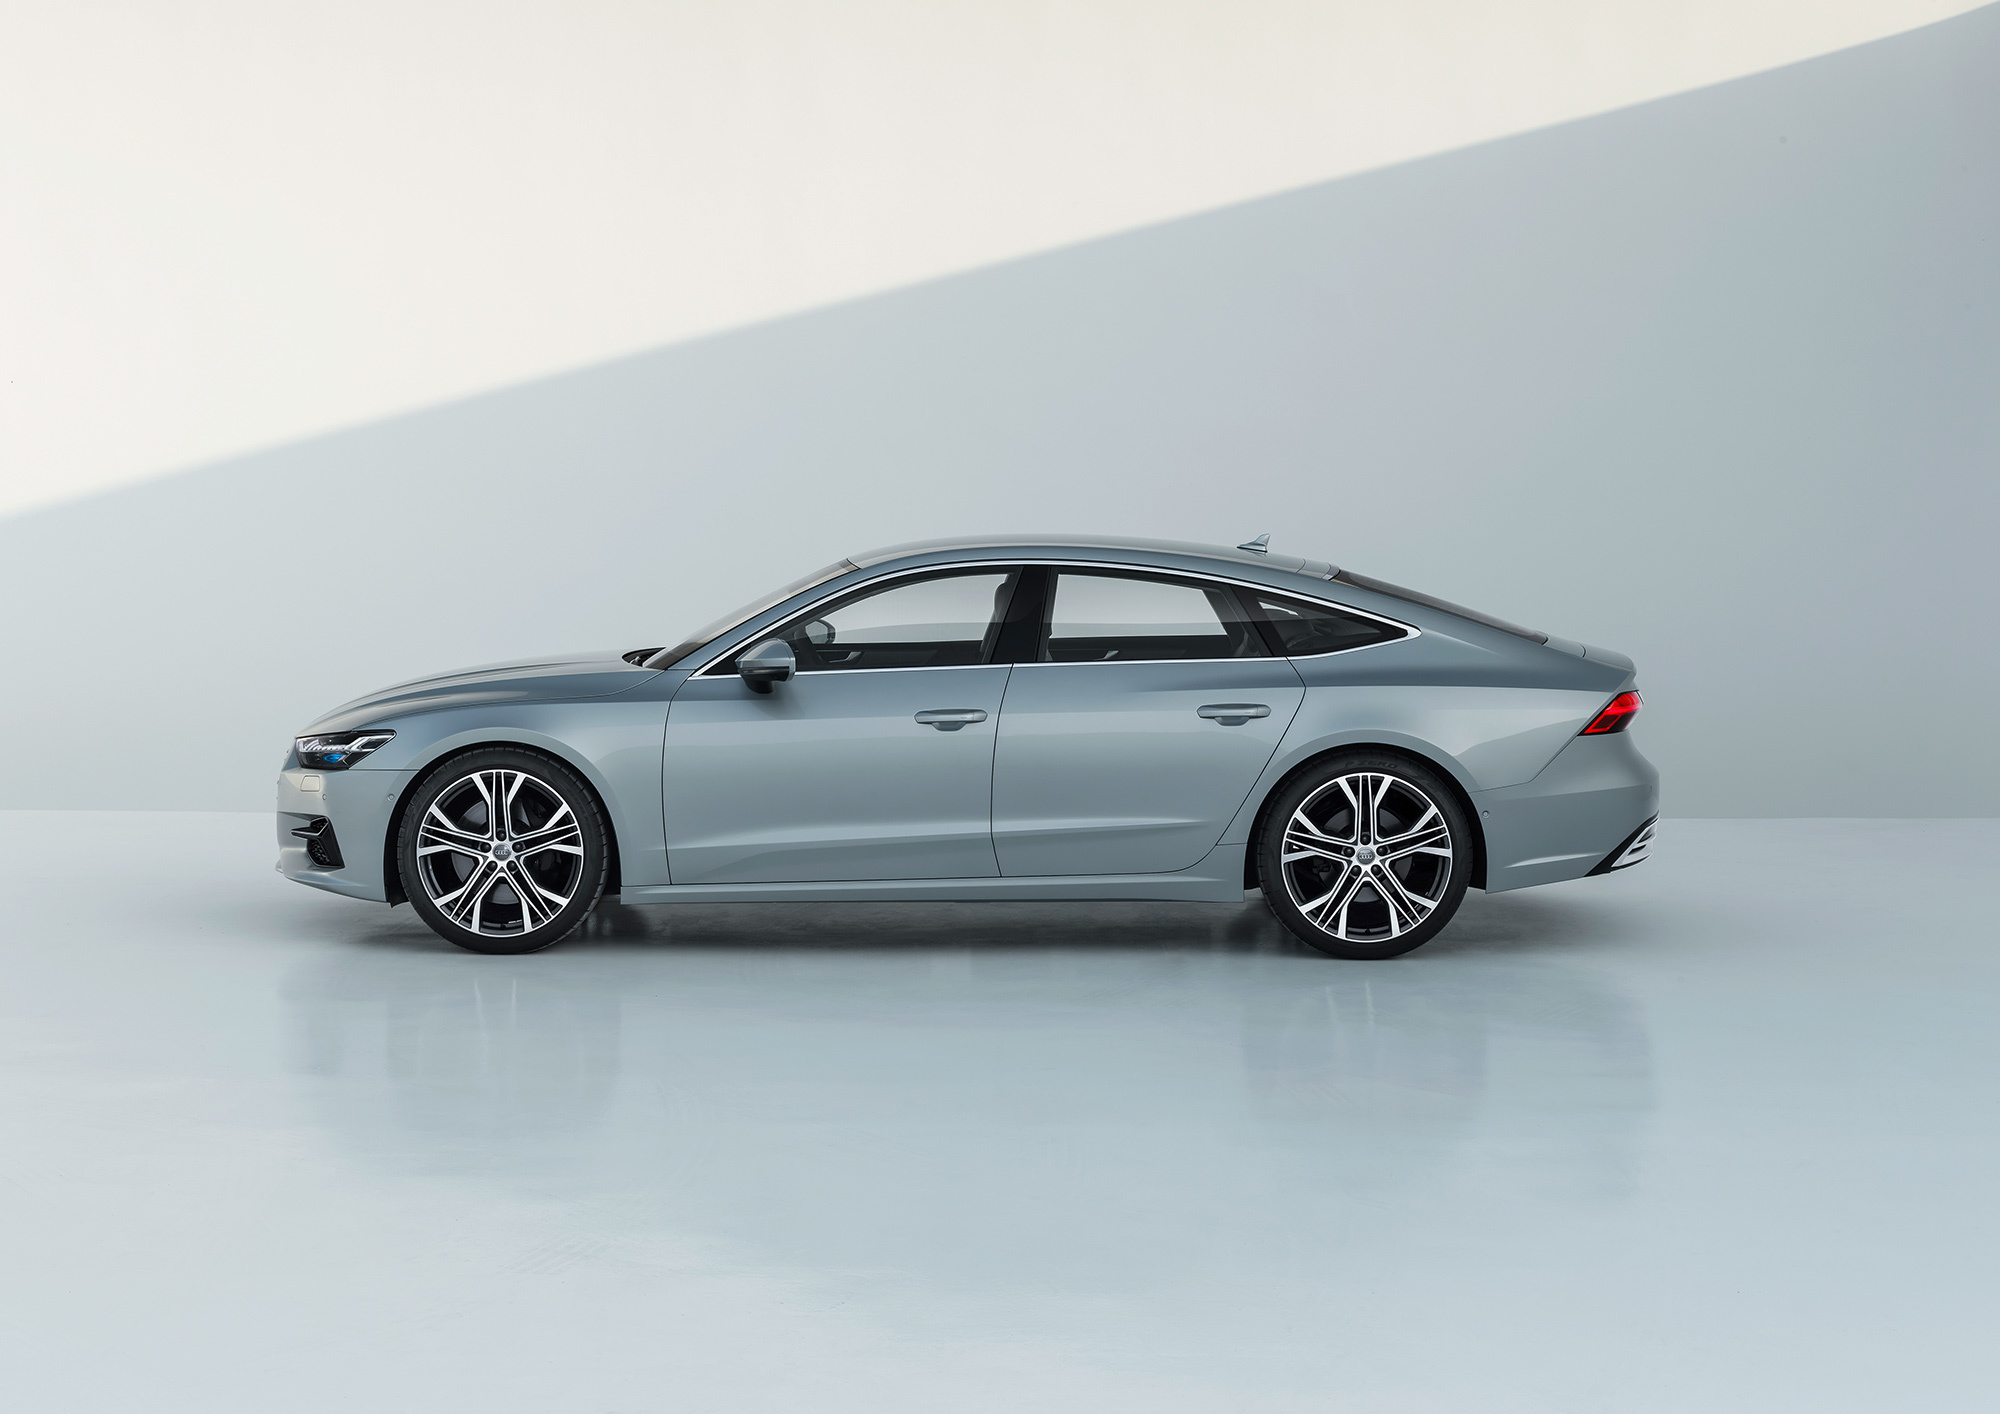 Audi A7 Sportback High Quality Wallpapers